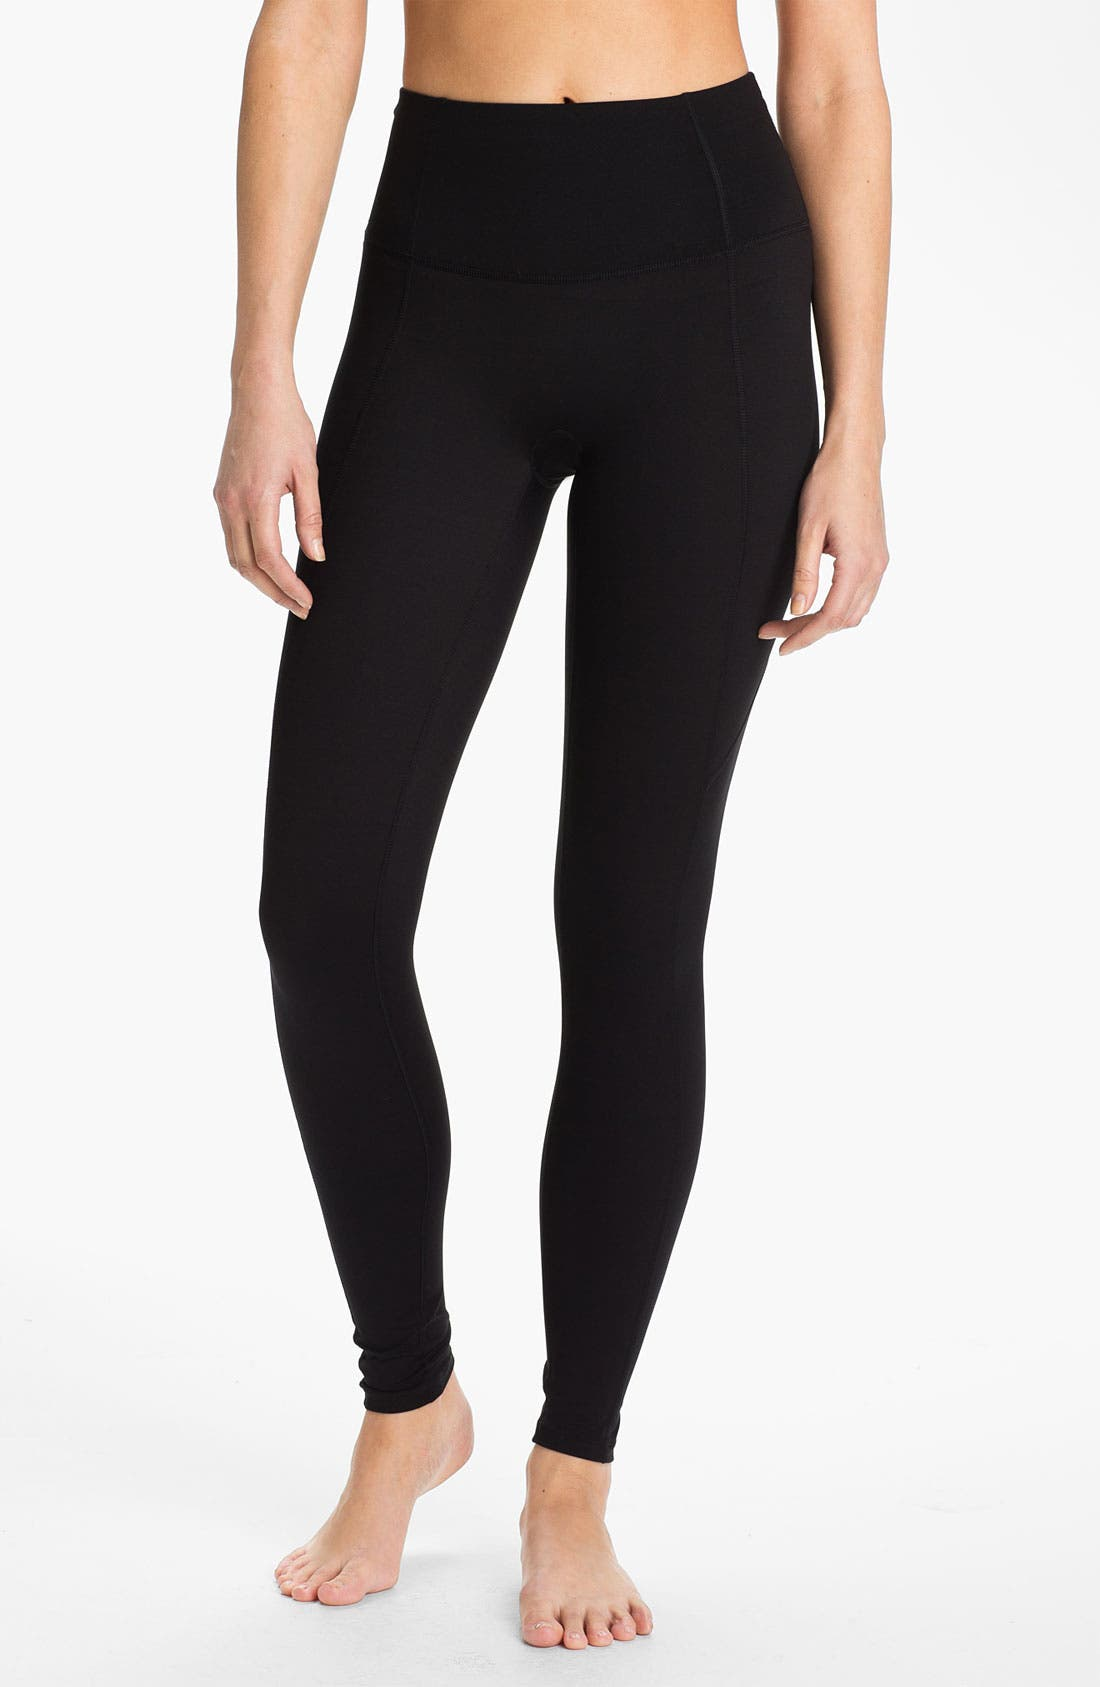 Alternate Image 1 Selected - SPANX® Shaping Compression Activewear Leggings